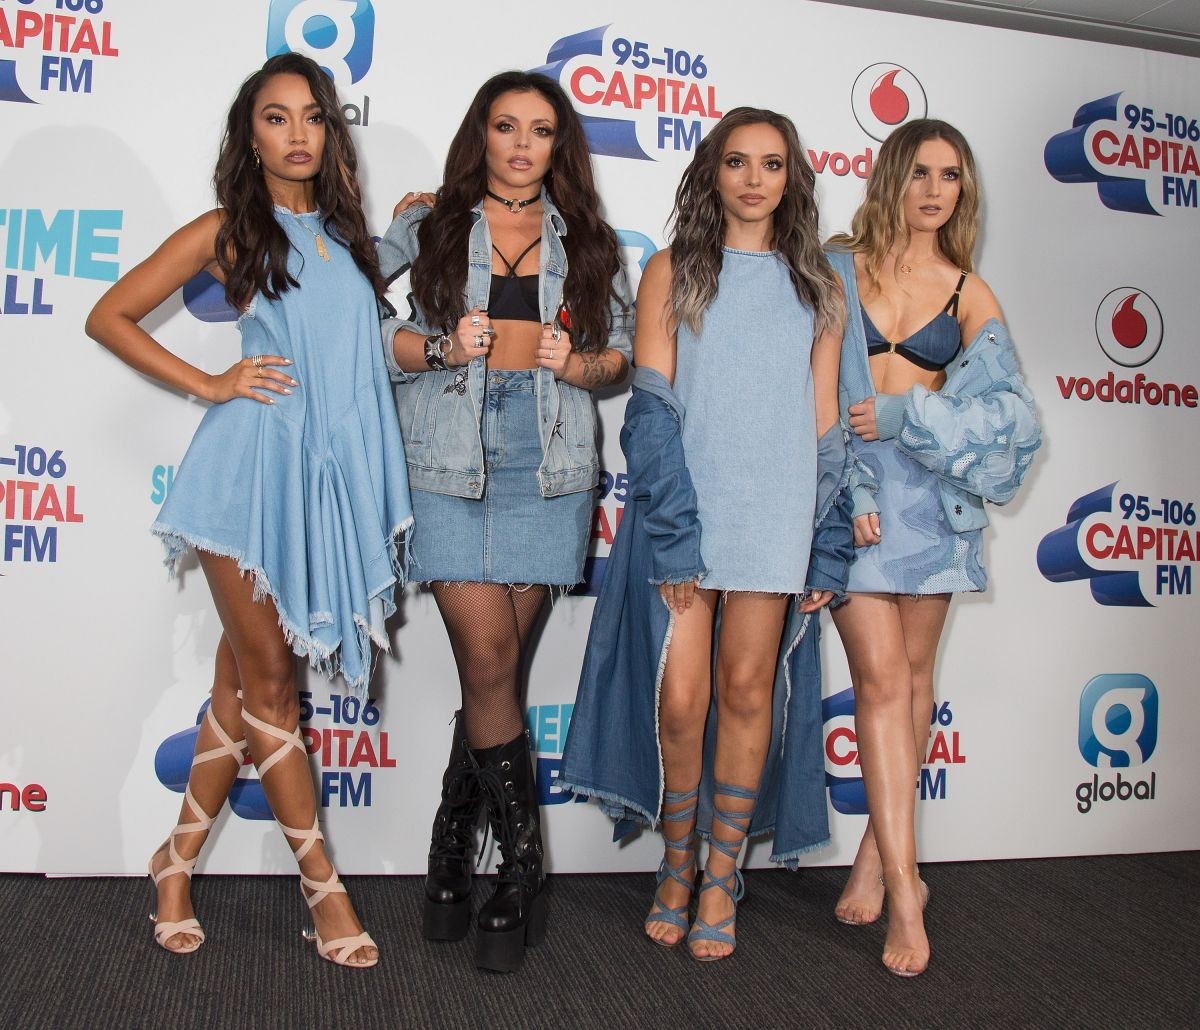 LITTLE MIX at Capital FM Summertime Ball in London 06/11/2016